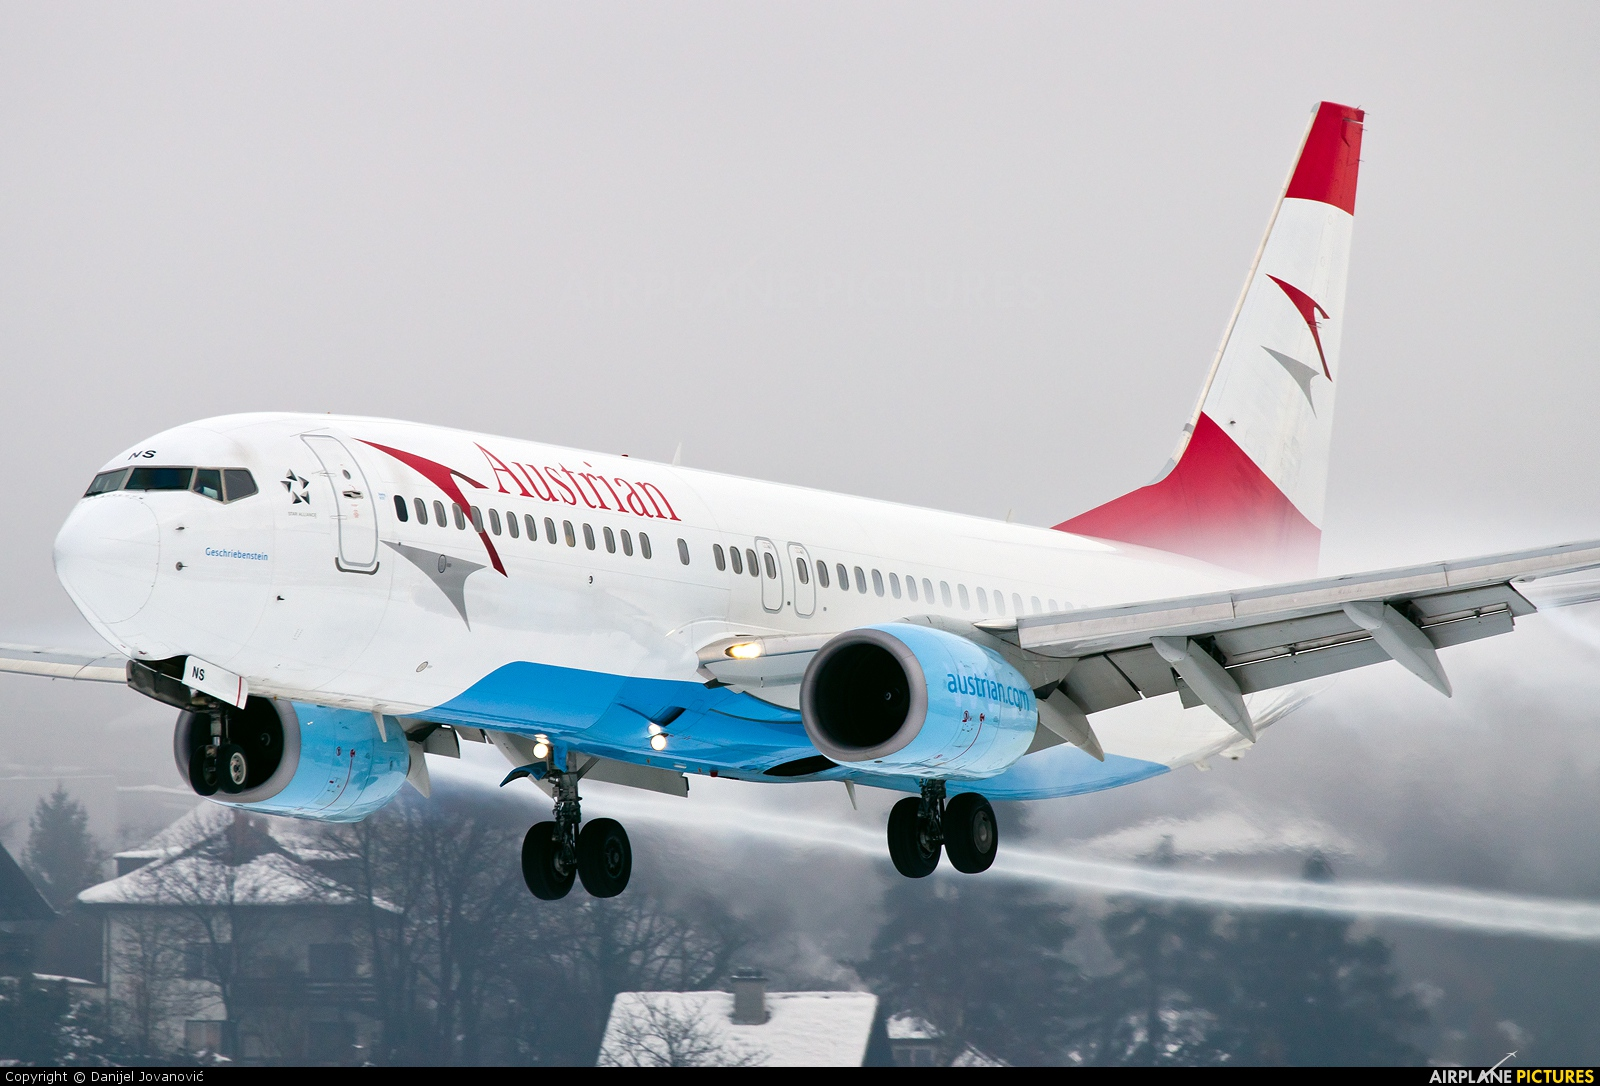 Austrian Airlines/Arrows/Tyrolean OE-LNS aircraft at Innsbruck